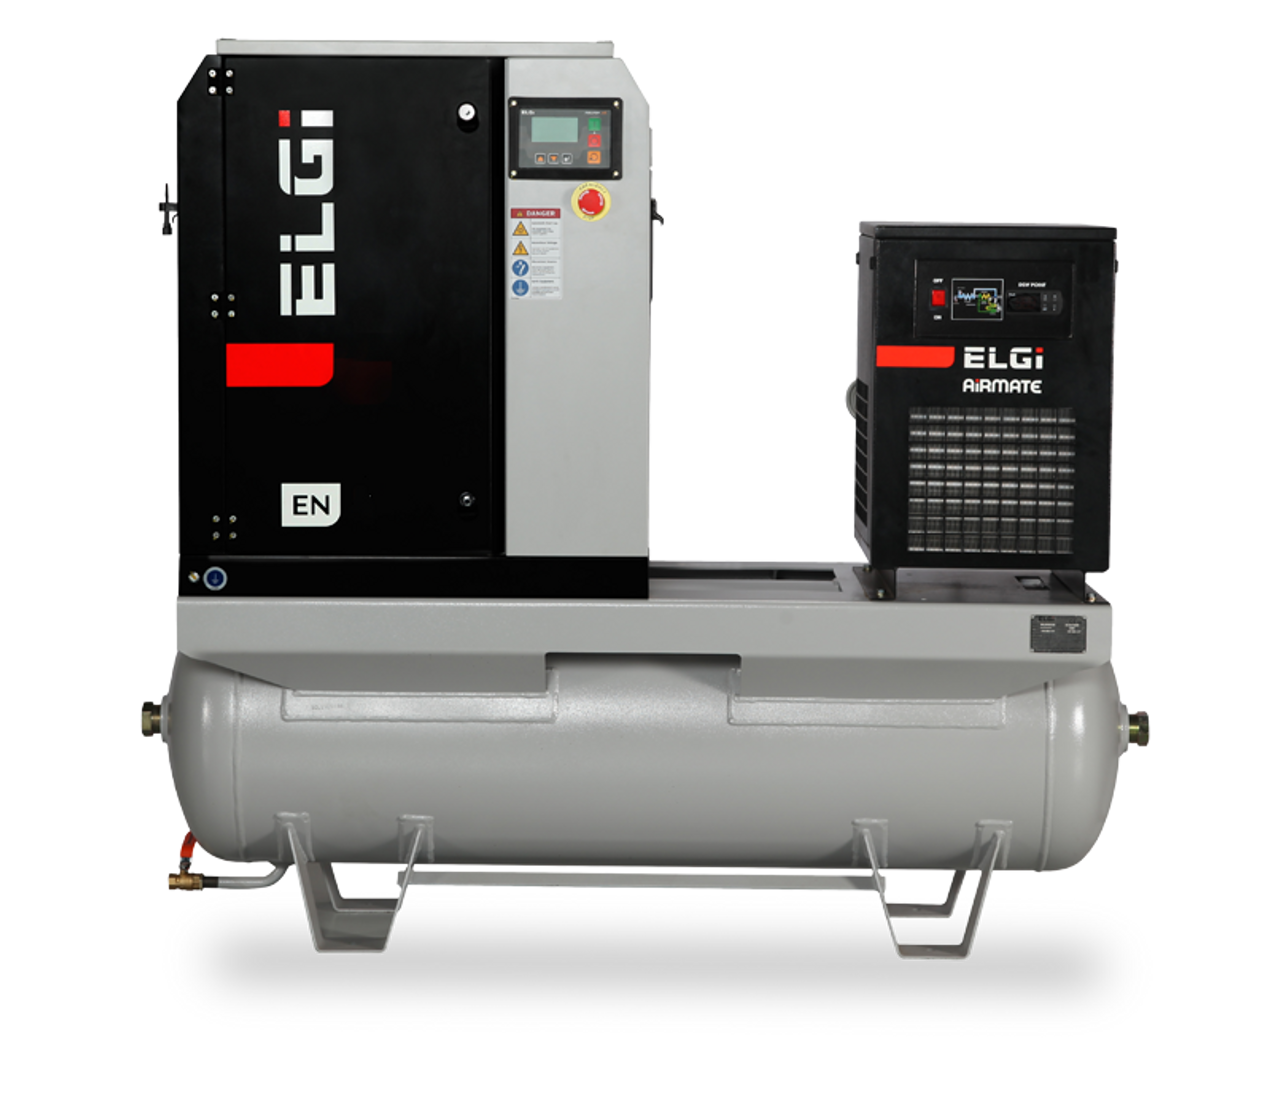 Elgi EN04-150-60T-G2 5 HP 208 Volt Three Phase Rotary Screw  Air Compressor Compressor 60 Gallon Horizontal Tank Mount with Dryer- 150 psi